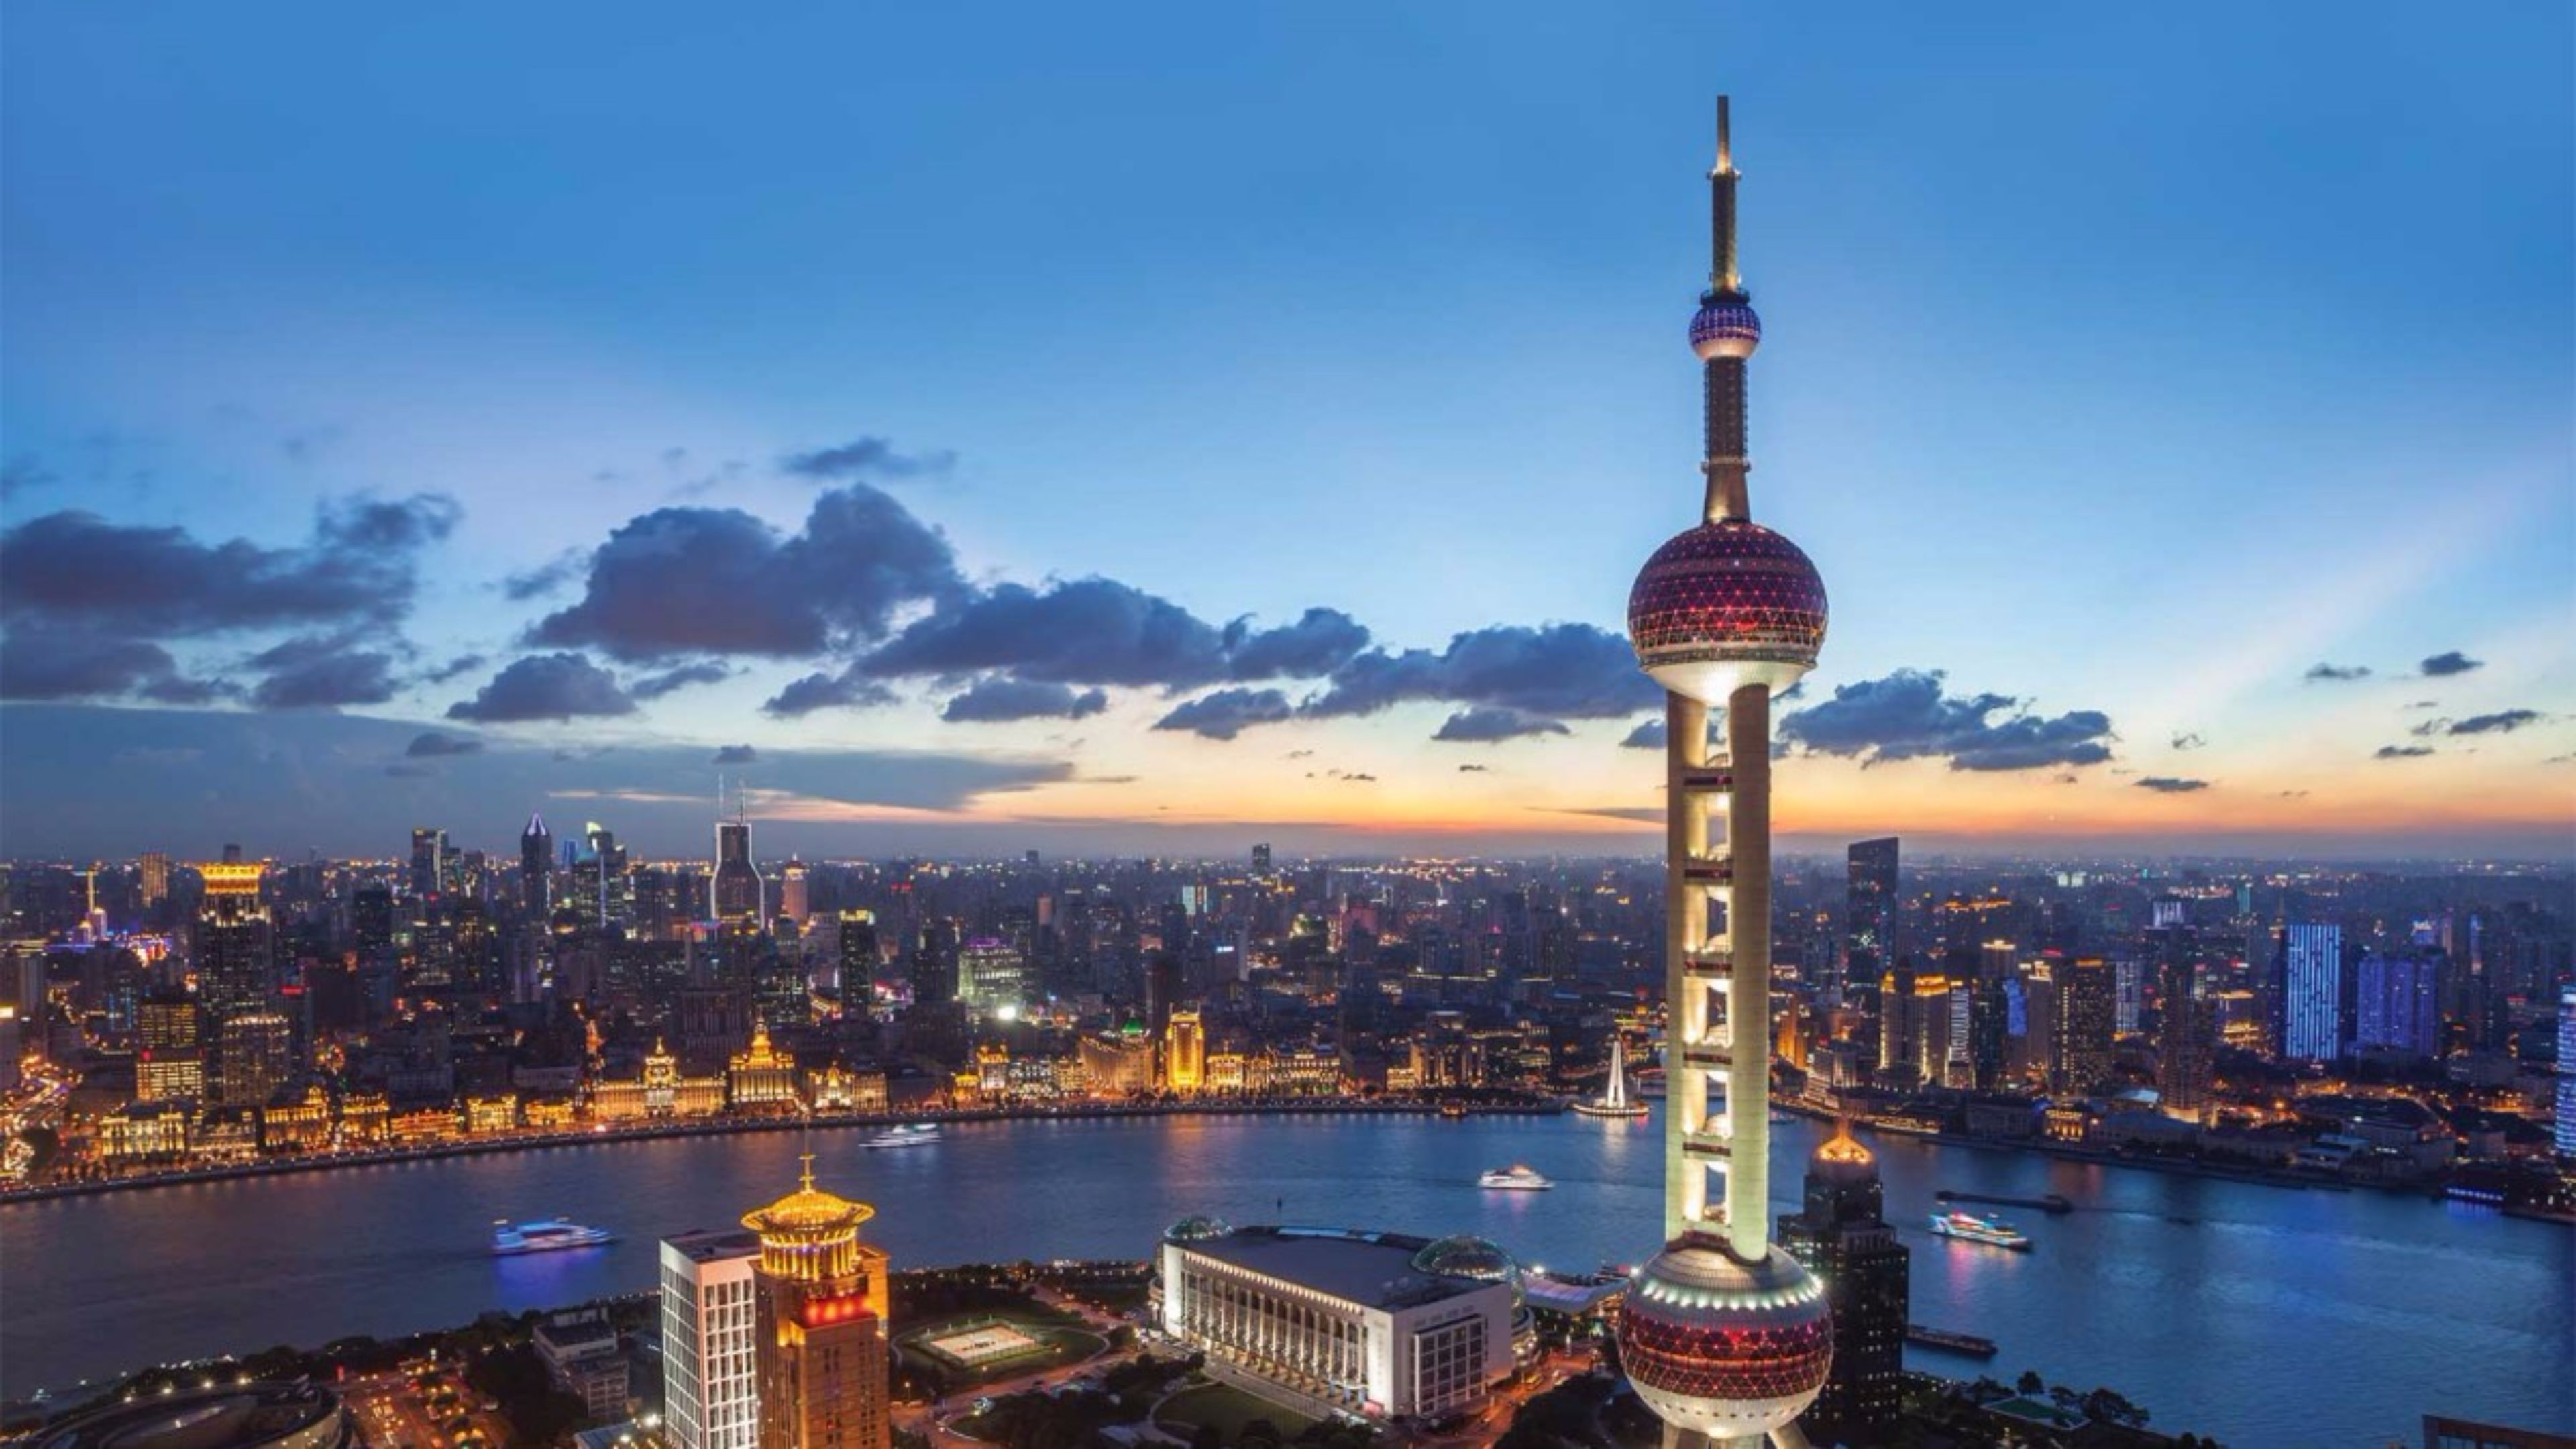 GLOBAL MANAGEMENT CONSULTING: Shanghai 2017